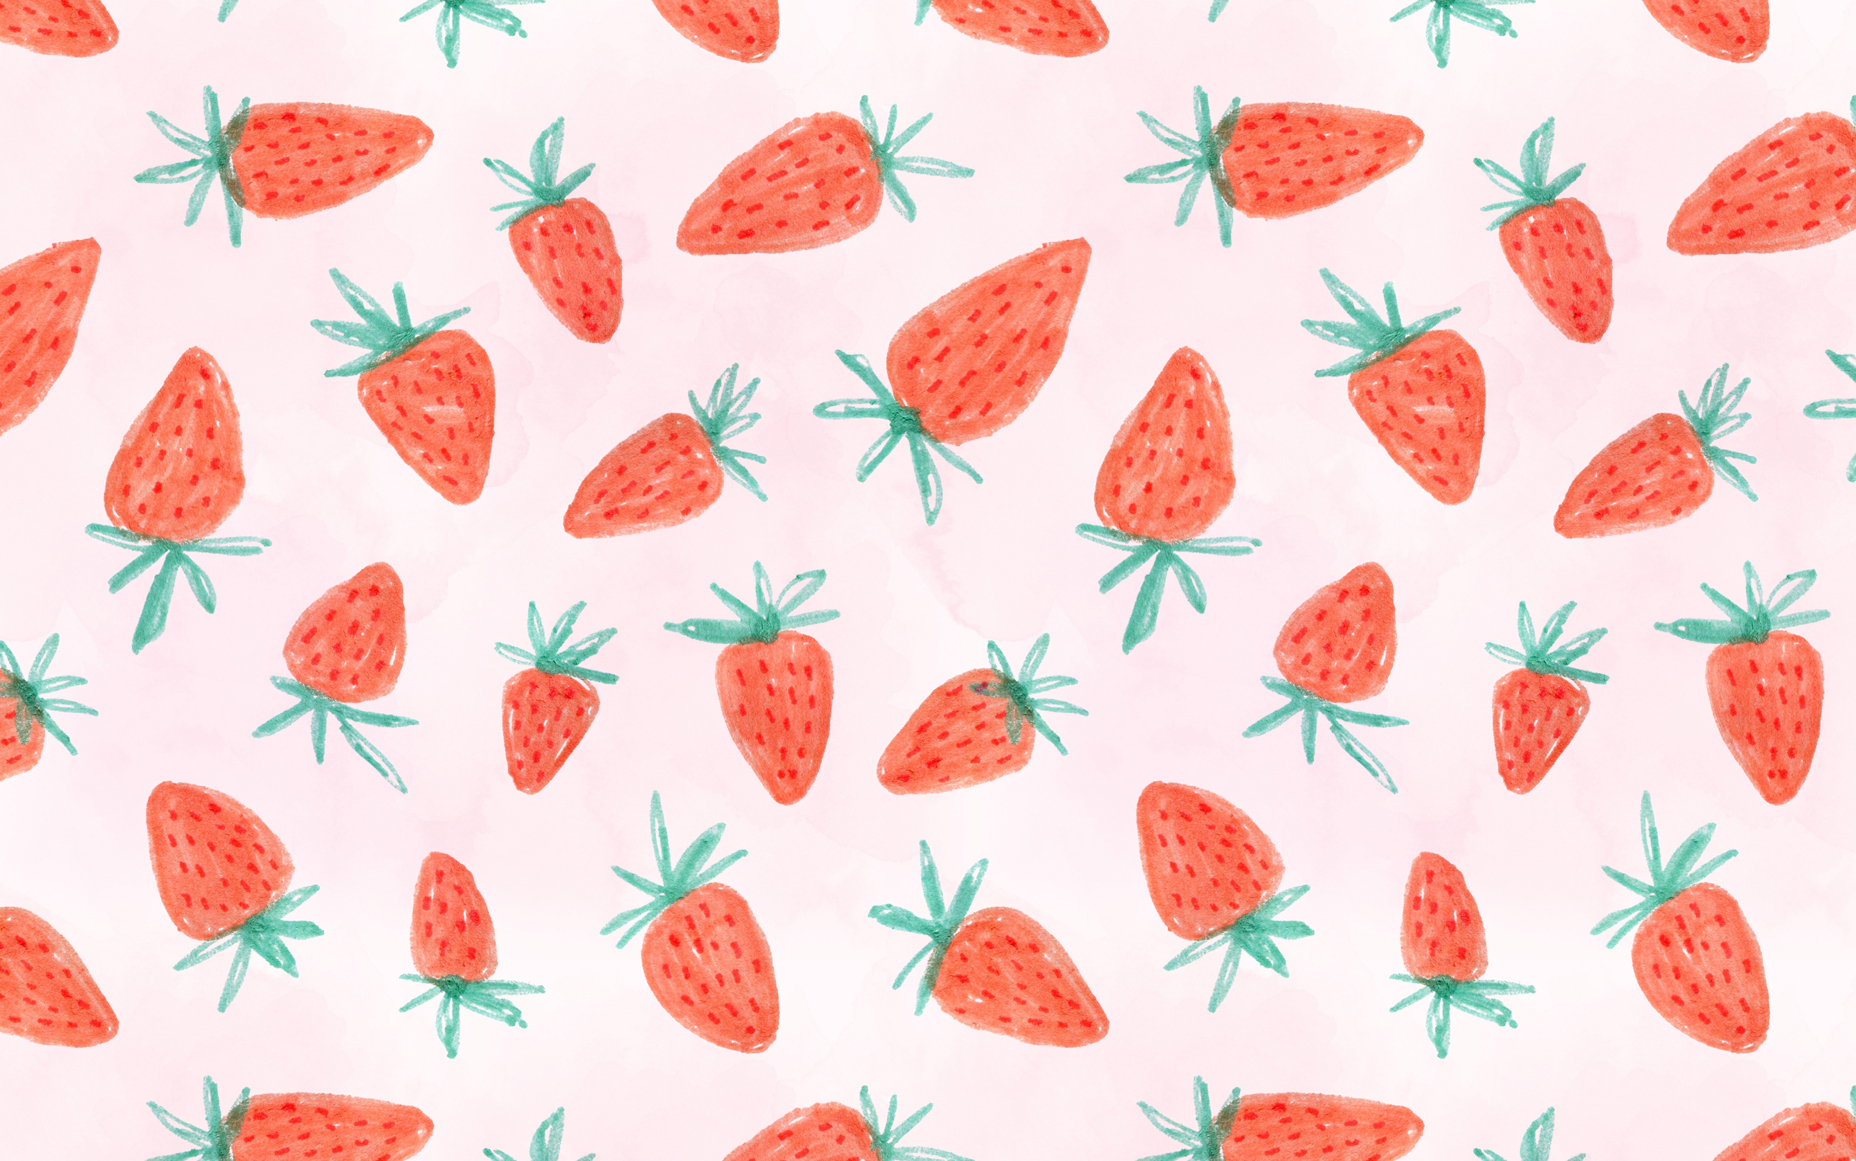 Amazing Wallpaper Macbook Pineapple - JenBPeters_Strawberries  Best Photo Reference_628957.jpg